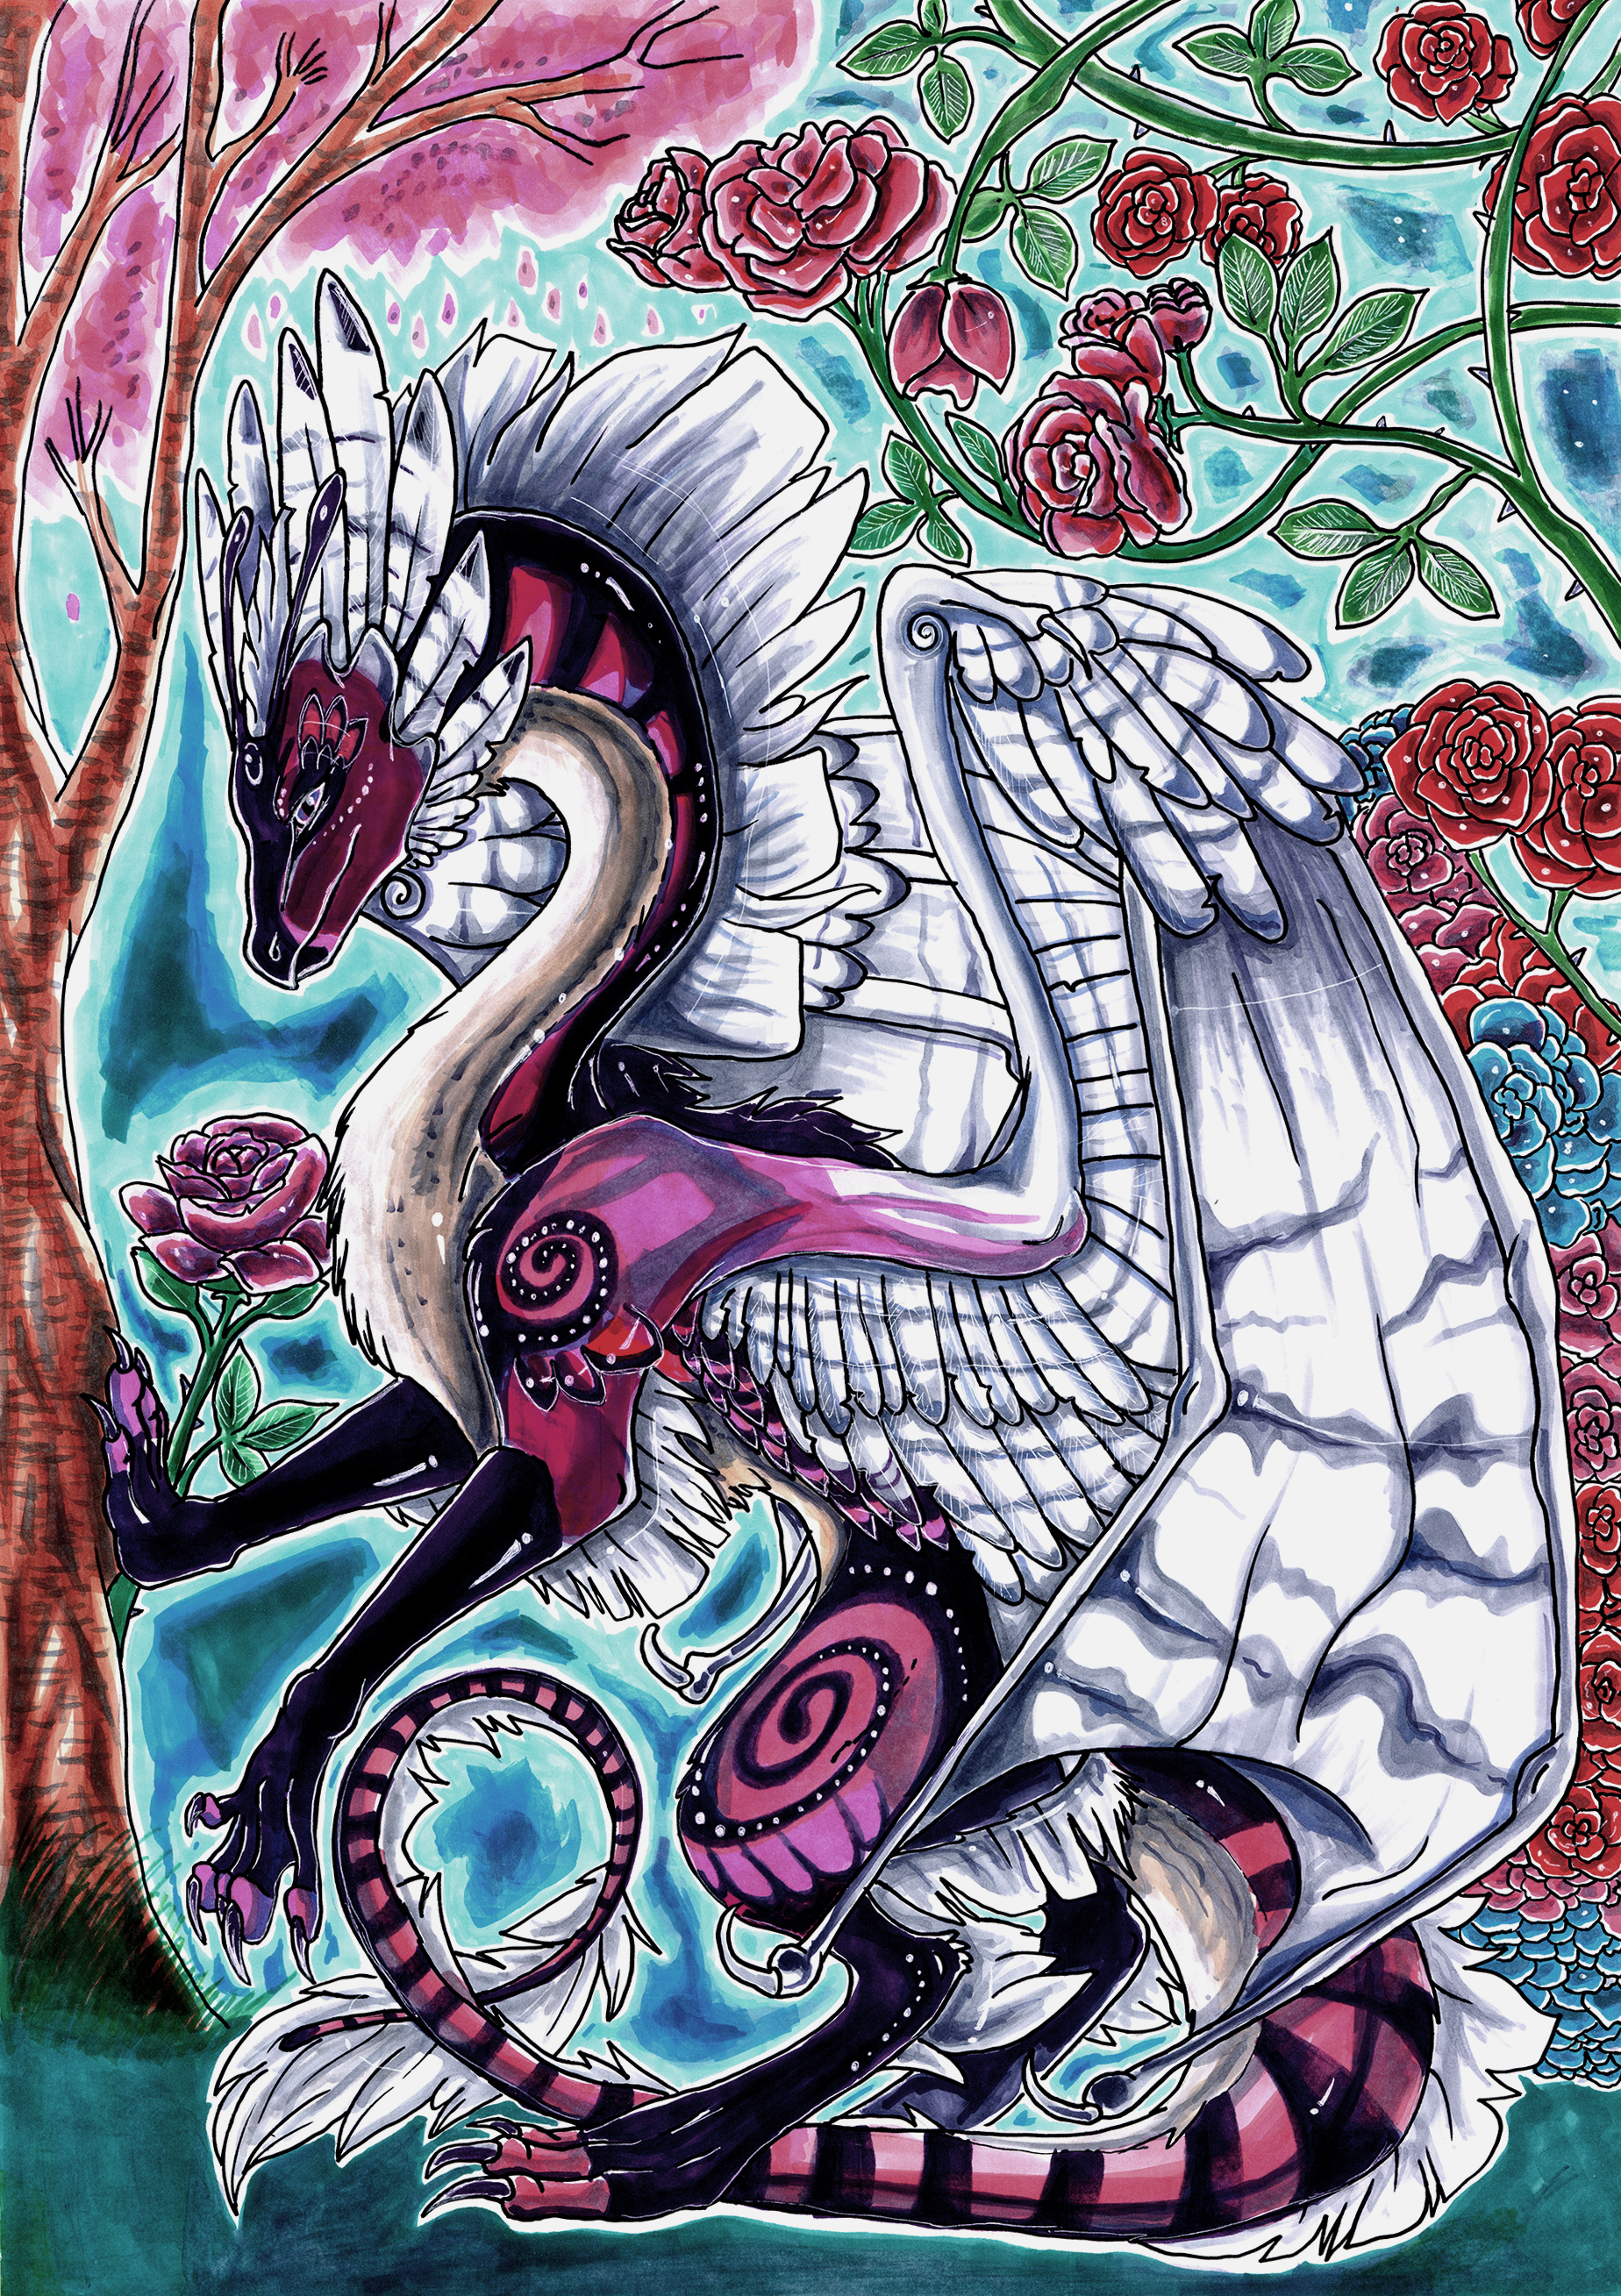 fr___dragoness_named_artemon_by_riavacornelia-dbtwr14.jpg